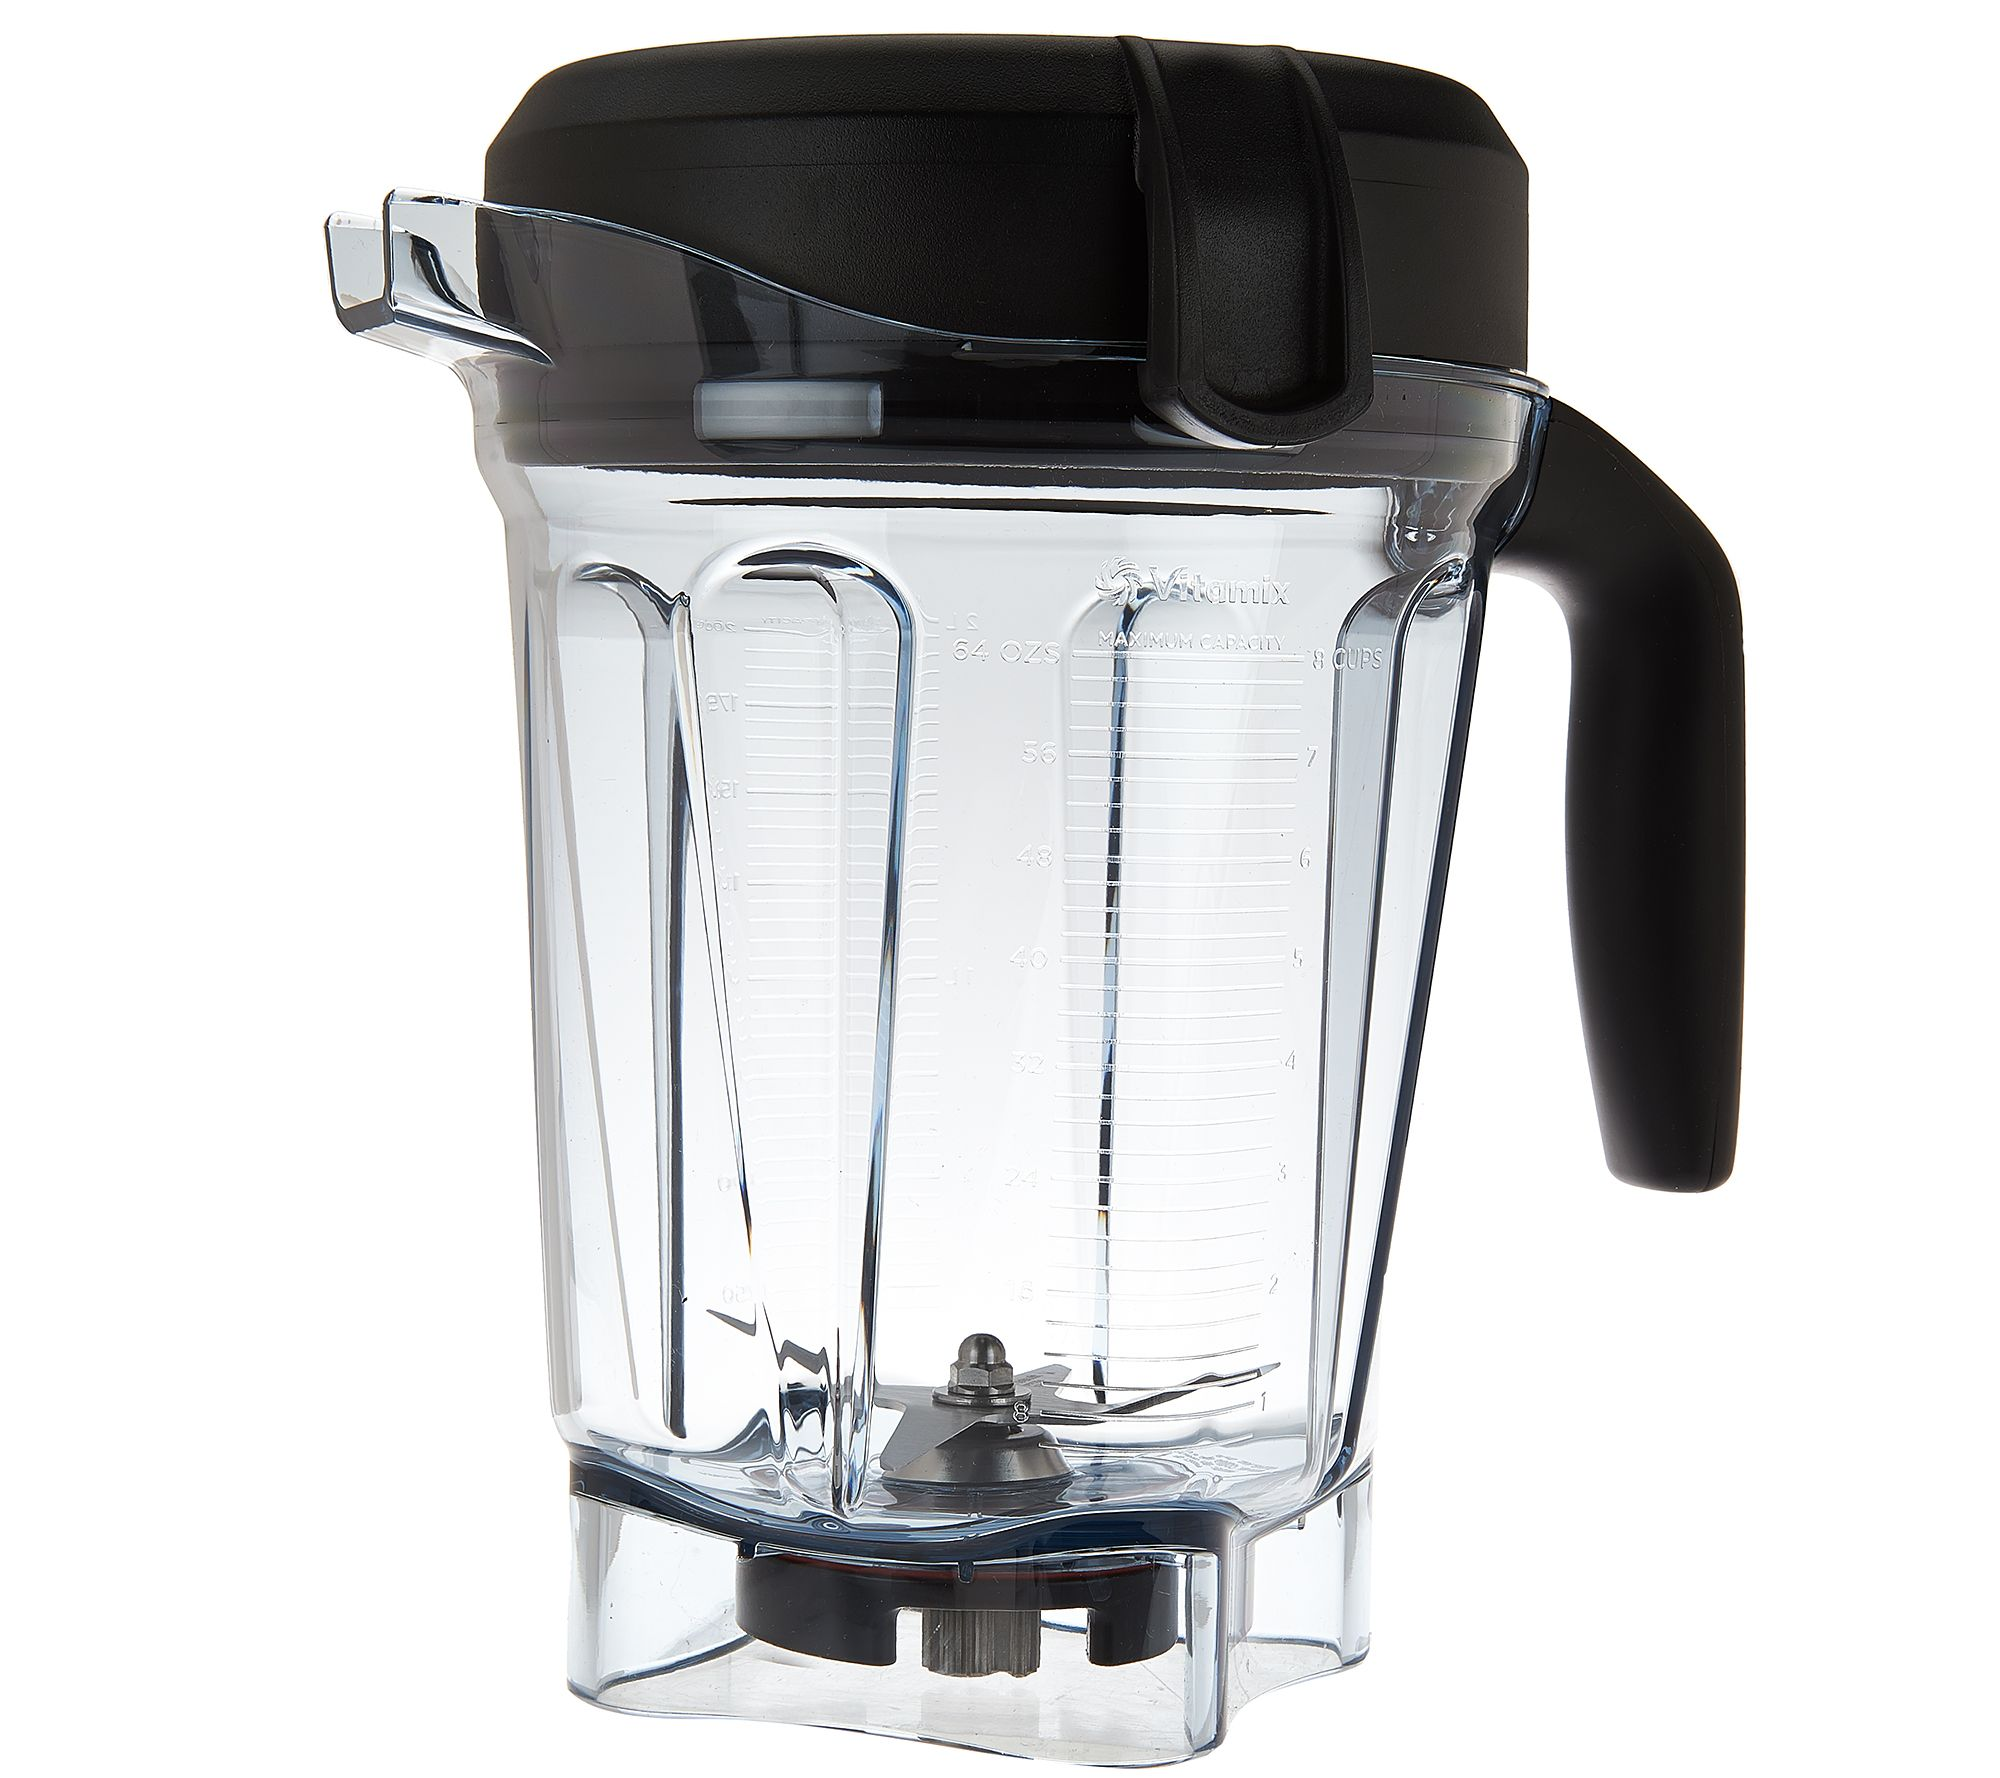 vitamix 64 oz 13in1 under cabinet variable speed blender page 1 u2014 qvccom - Vitamix 750